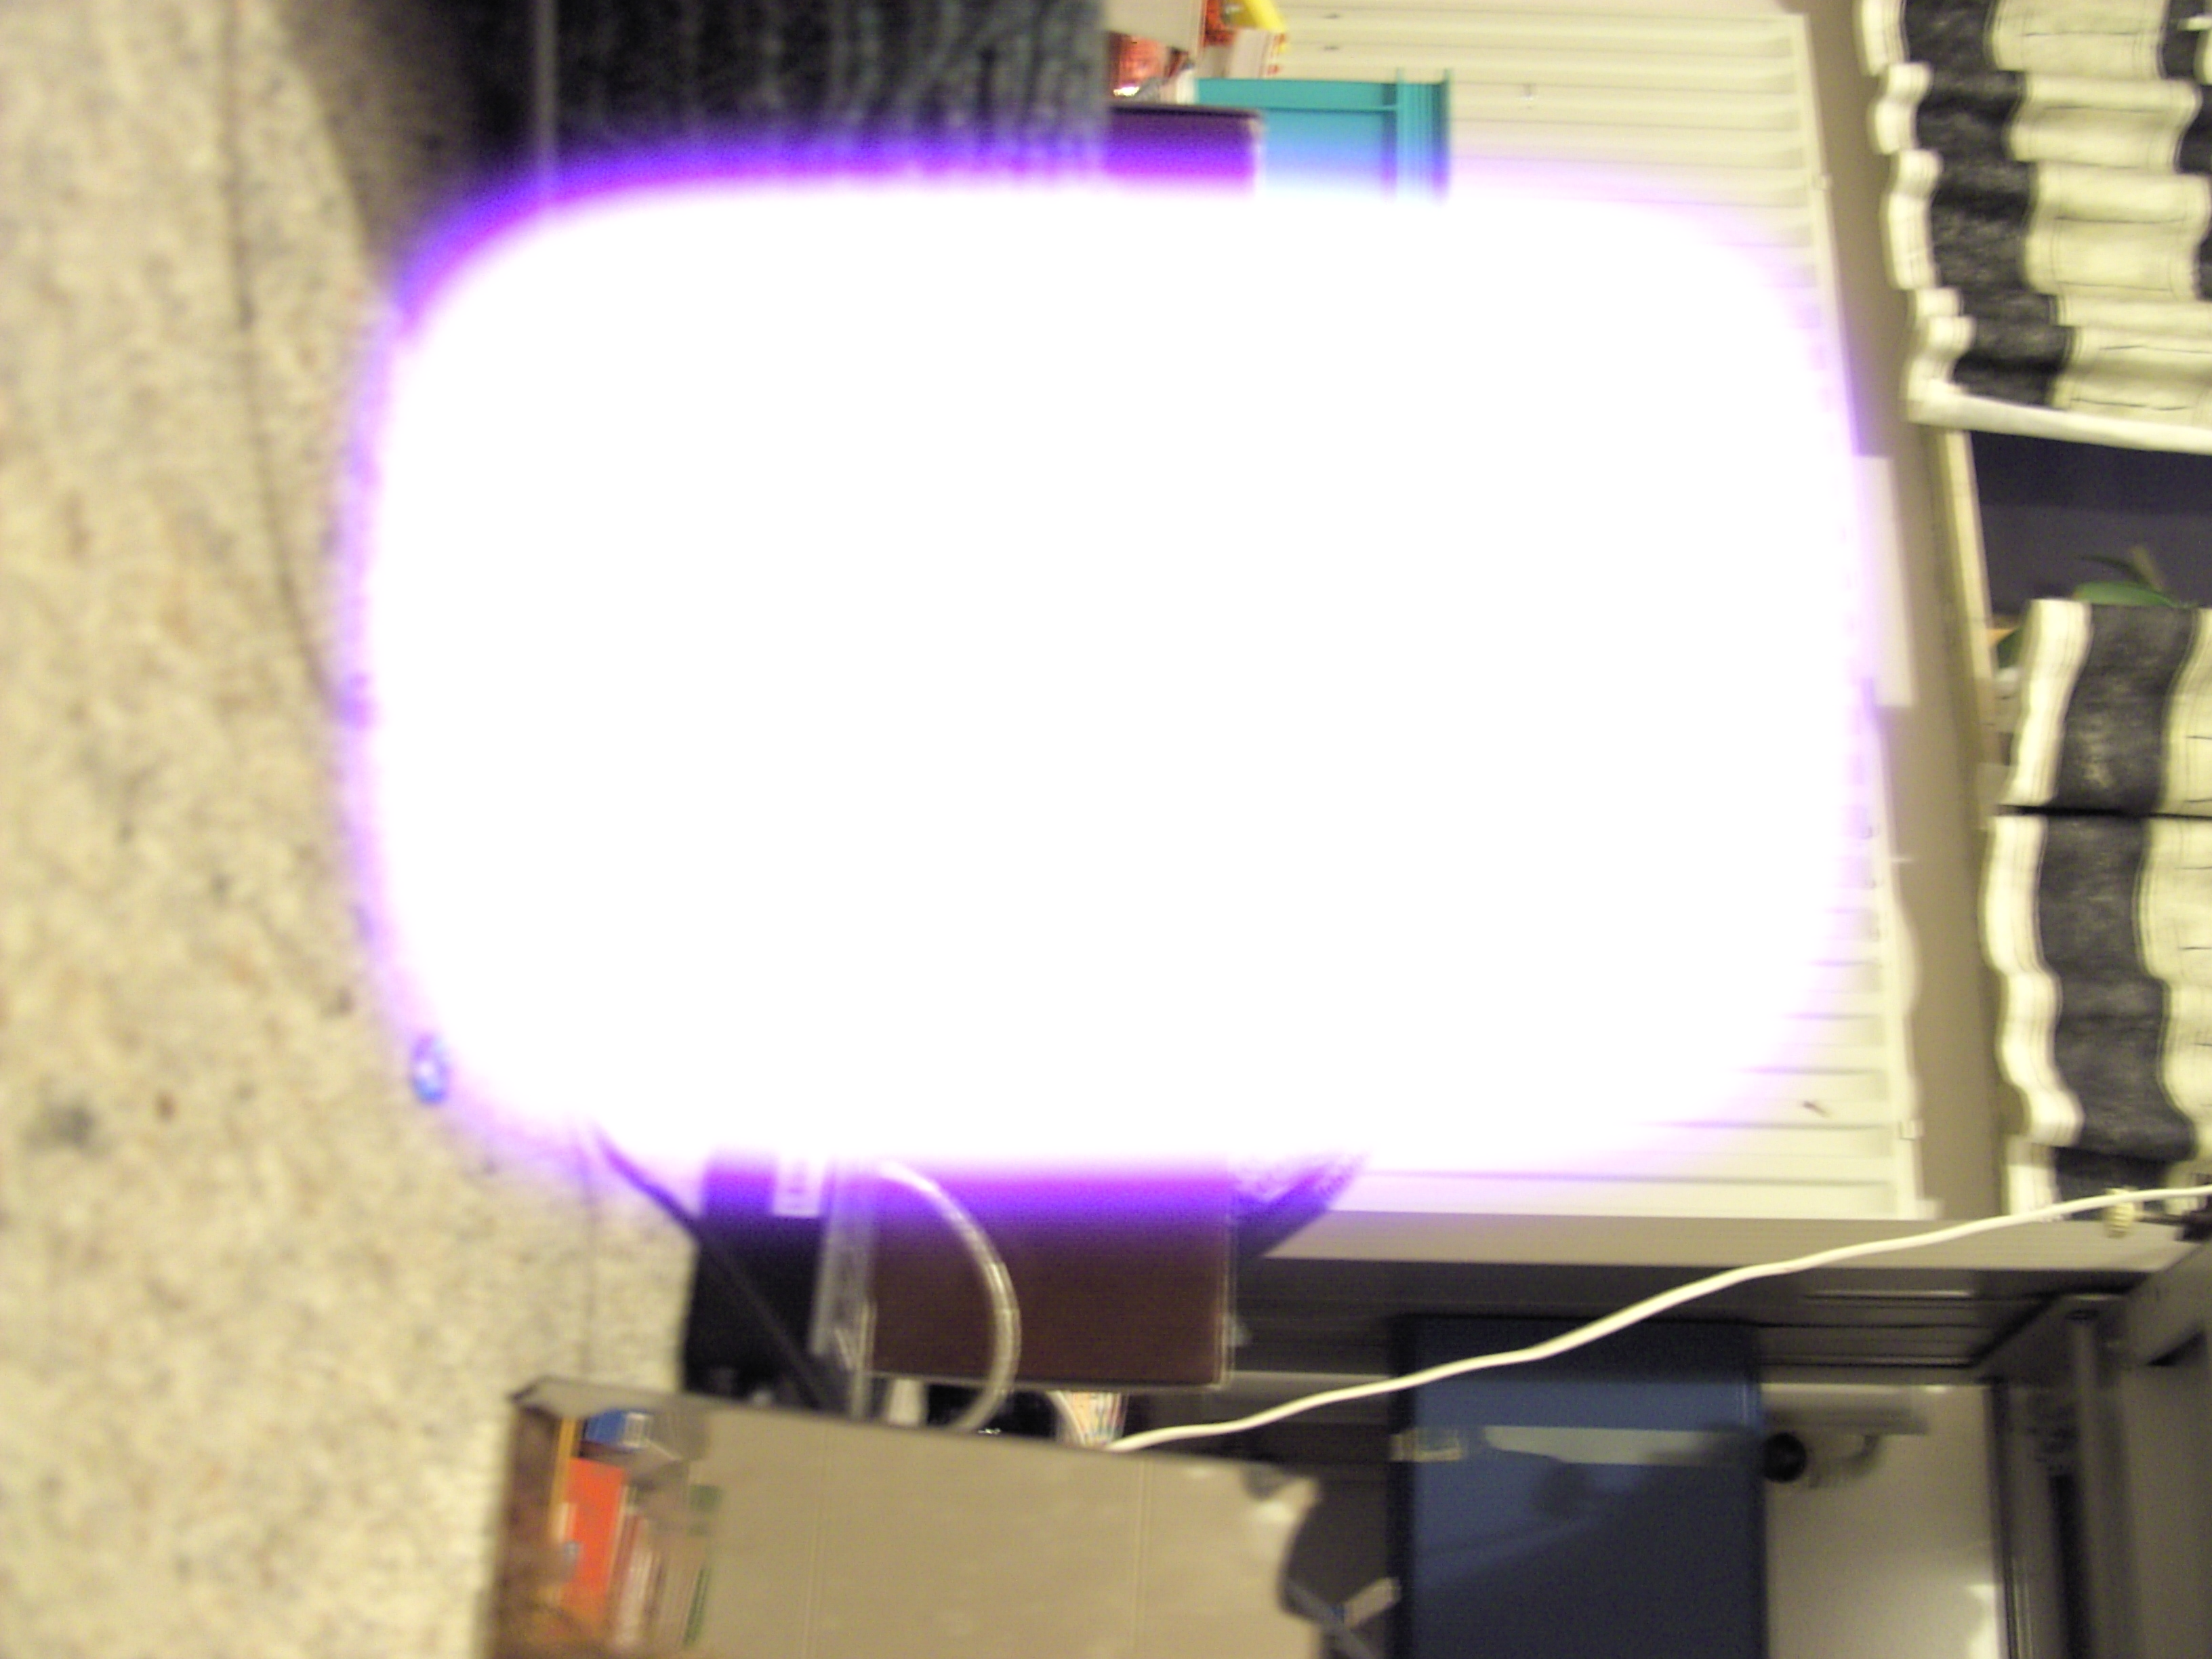 Digicam Trouble: Weird Purple Light On Pictures